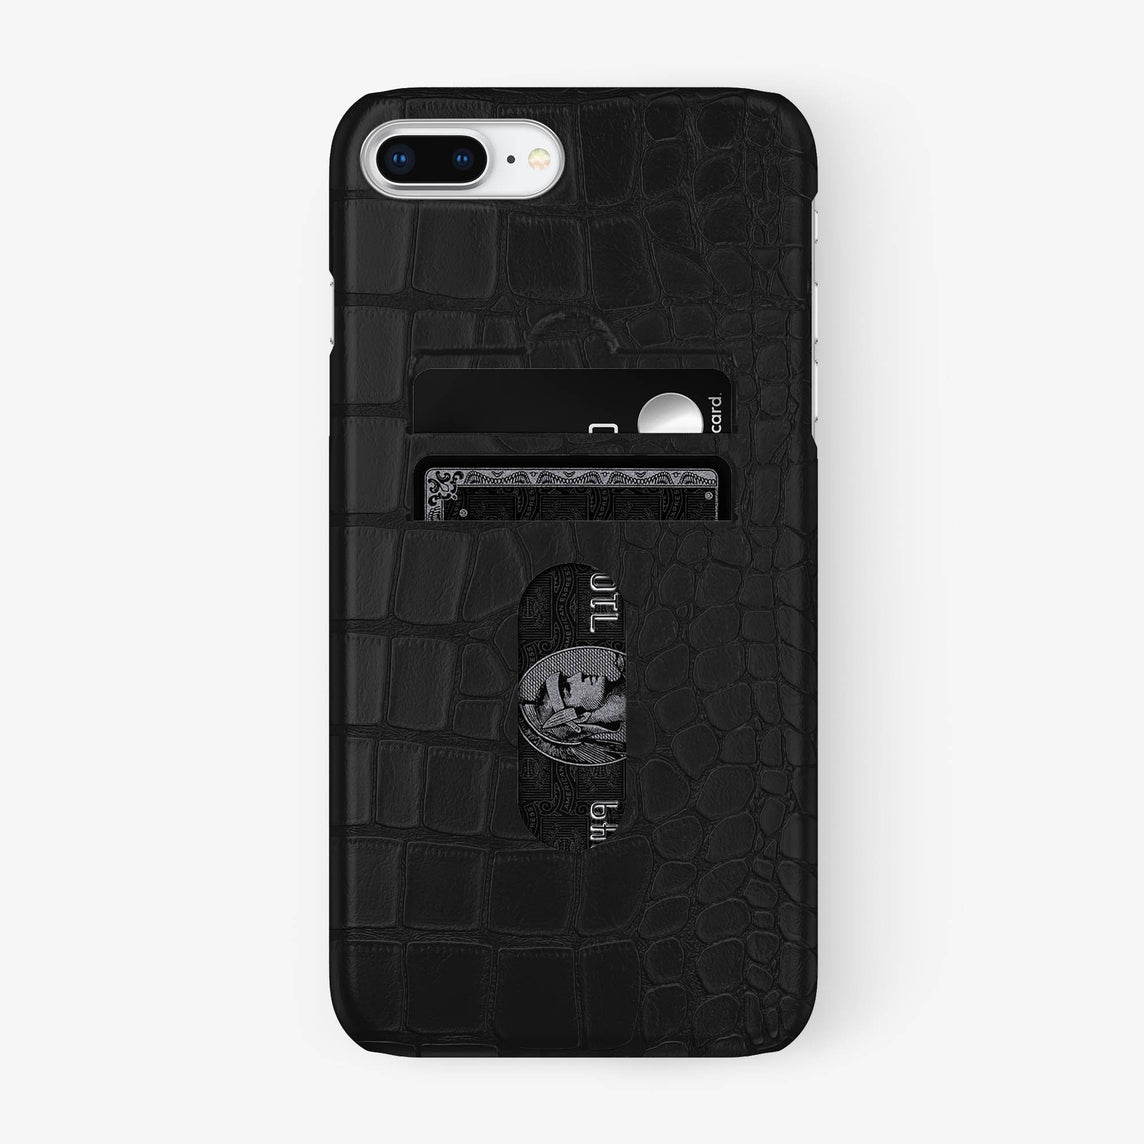 Alligator Card Holder Case iPhone 7/8 Plus | Phantom Black - Stainless Steel - Hadoro